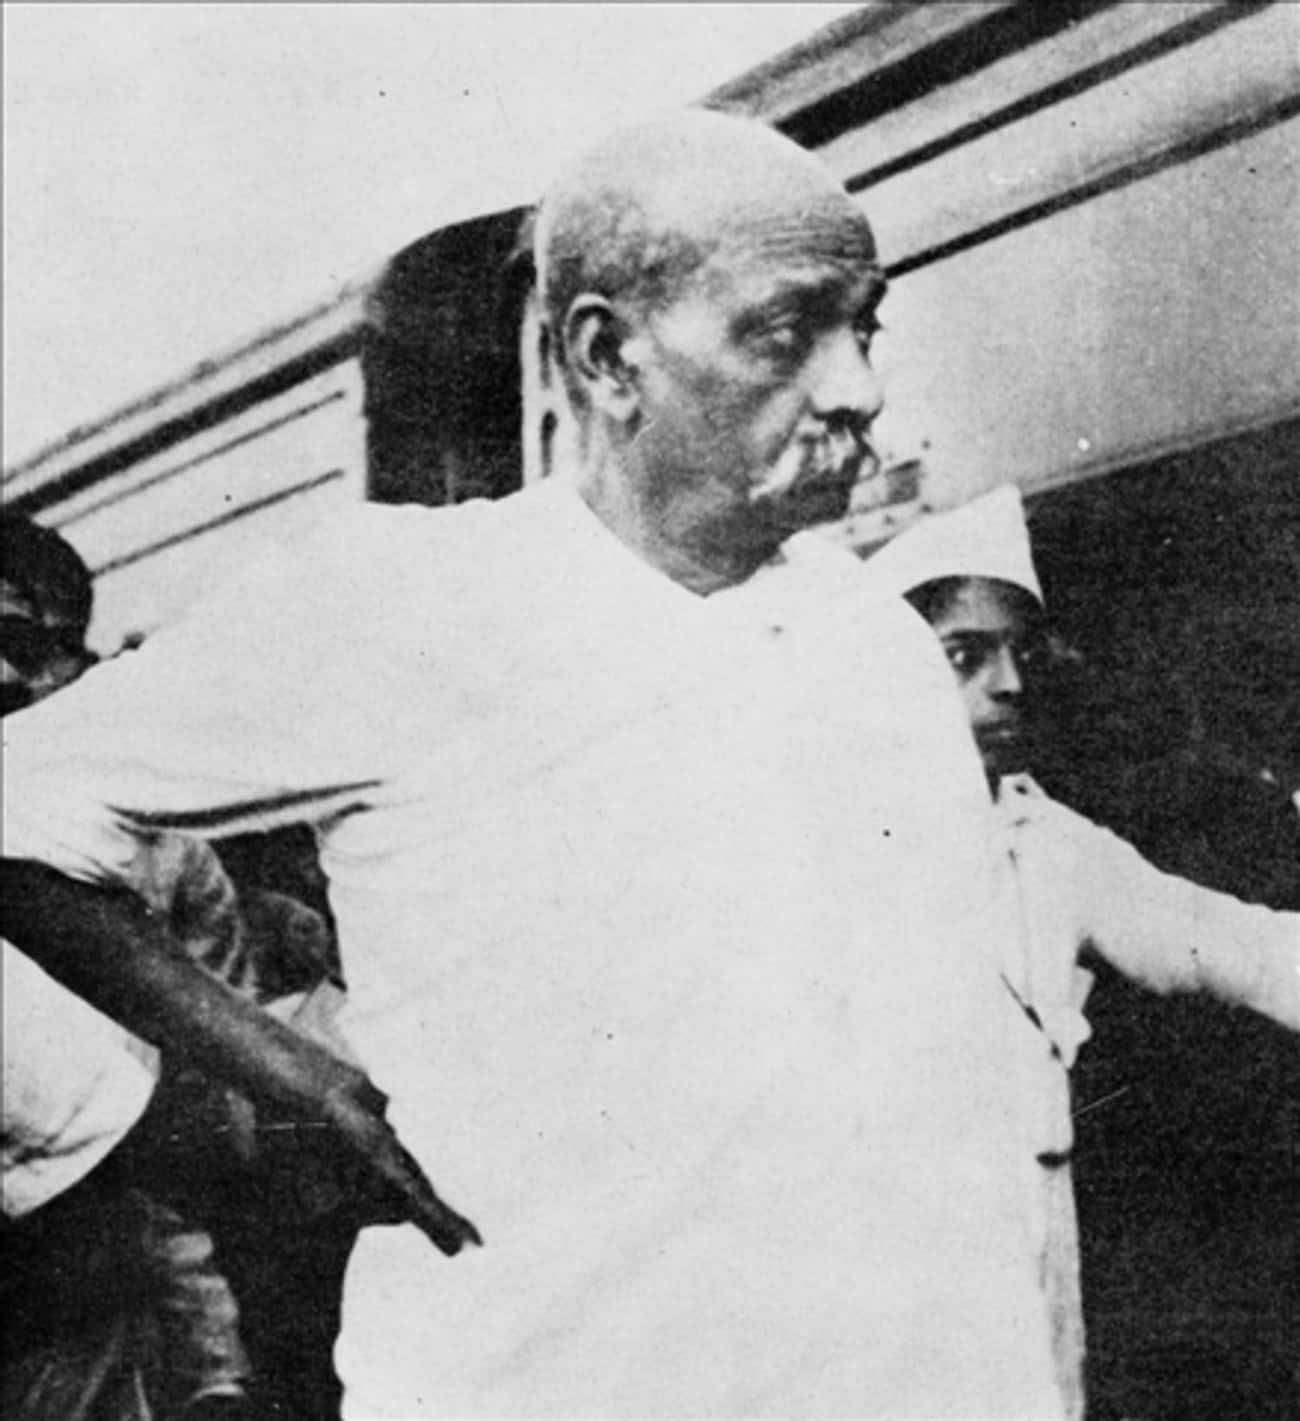 Vallabhbhai Patel is listed (or ranked) 2 on the list List of Famous Indian independence activistss